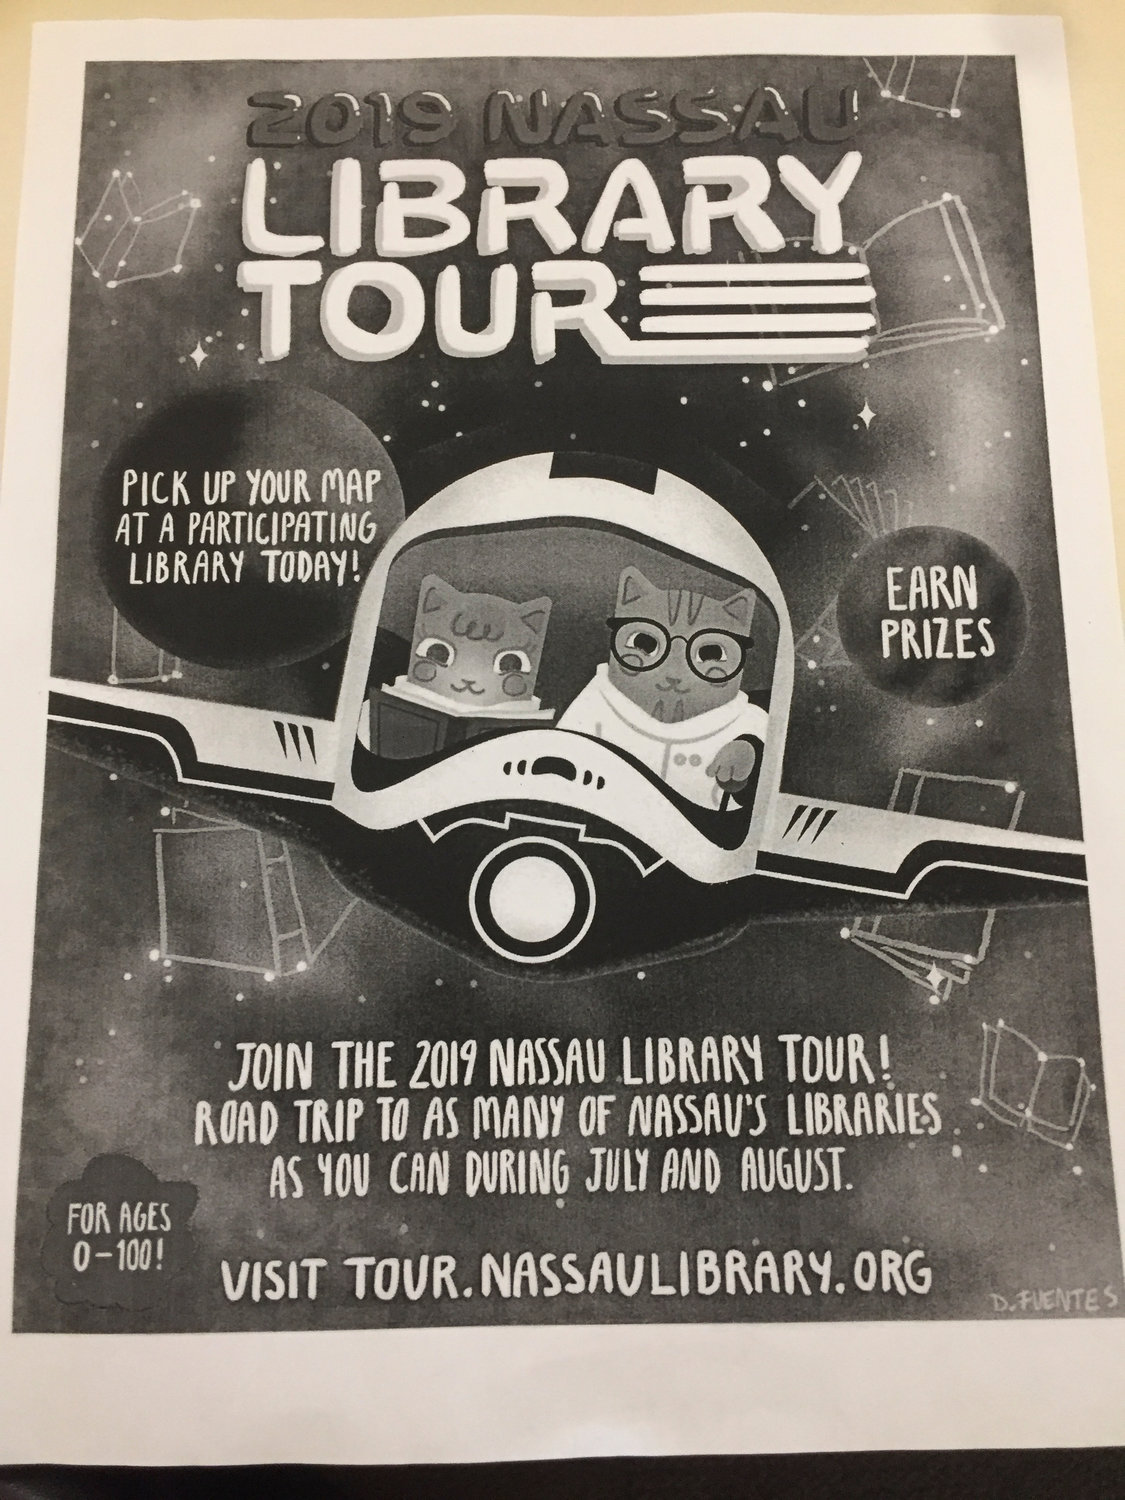 Peninsula Public Library and Hewlett-Woodmere Public Library are two of 52 libraries participating in the Nassau County summer library tour that begins next month.